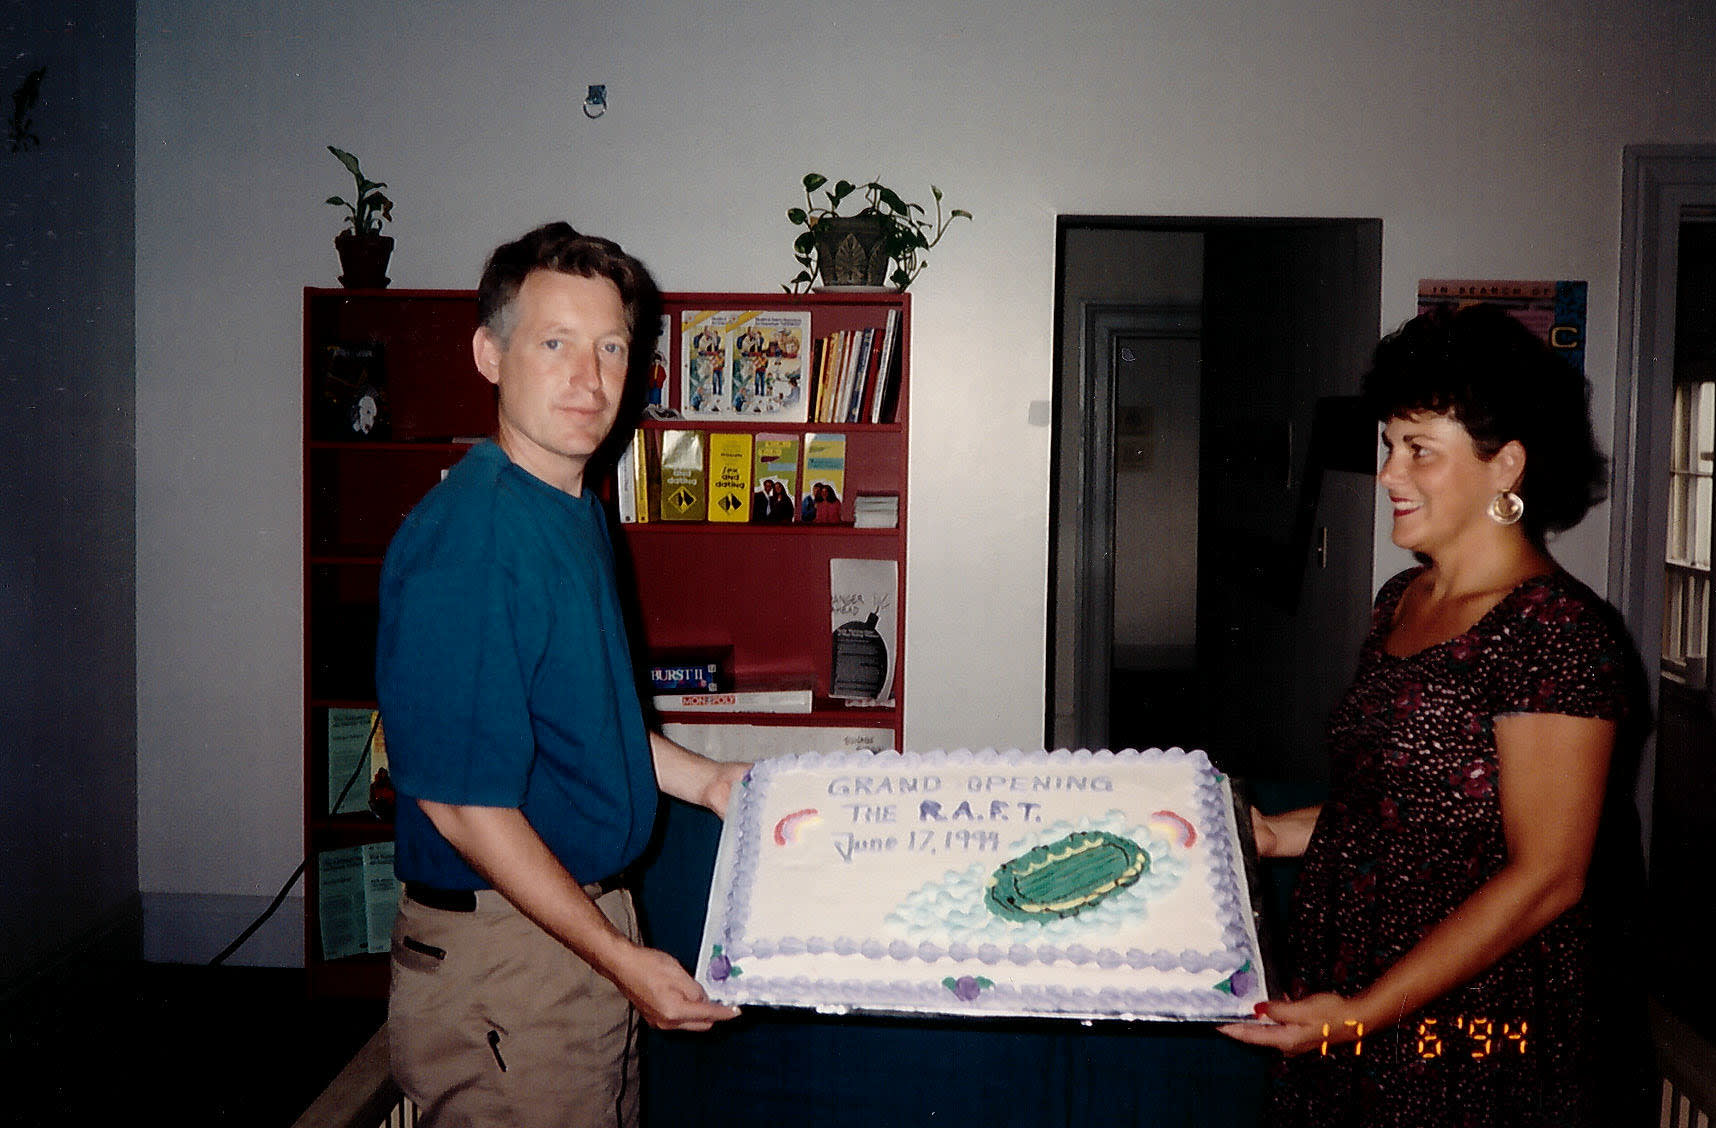 Founding Members of the RAFT Board Celebrating day one with a commemorative cake